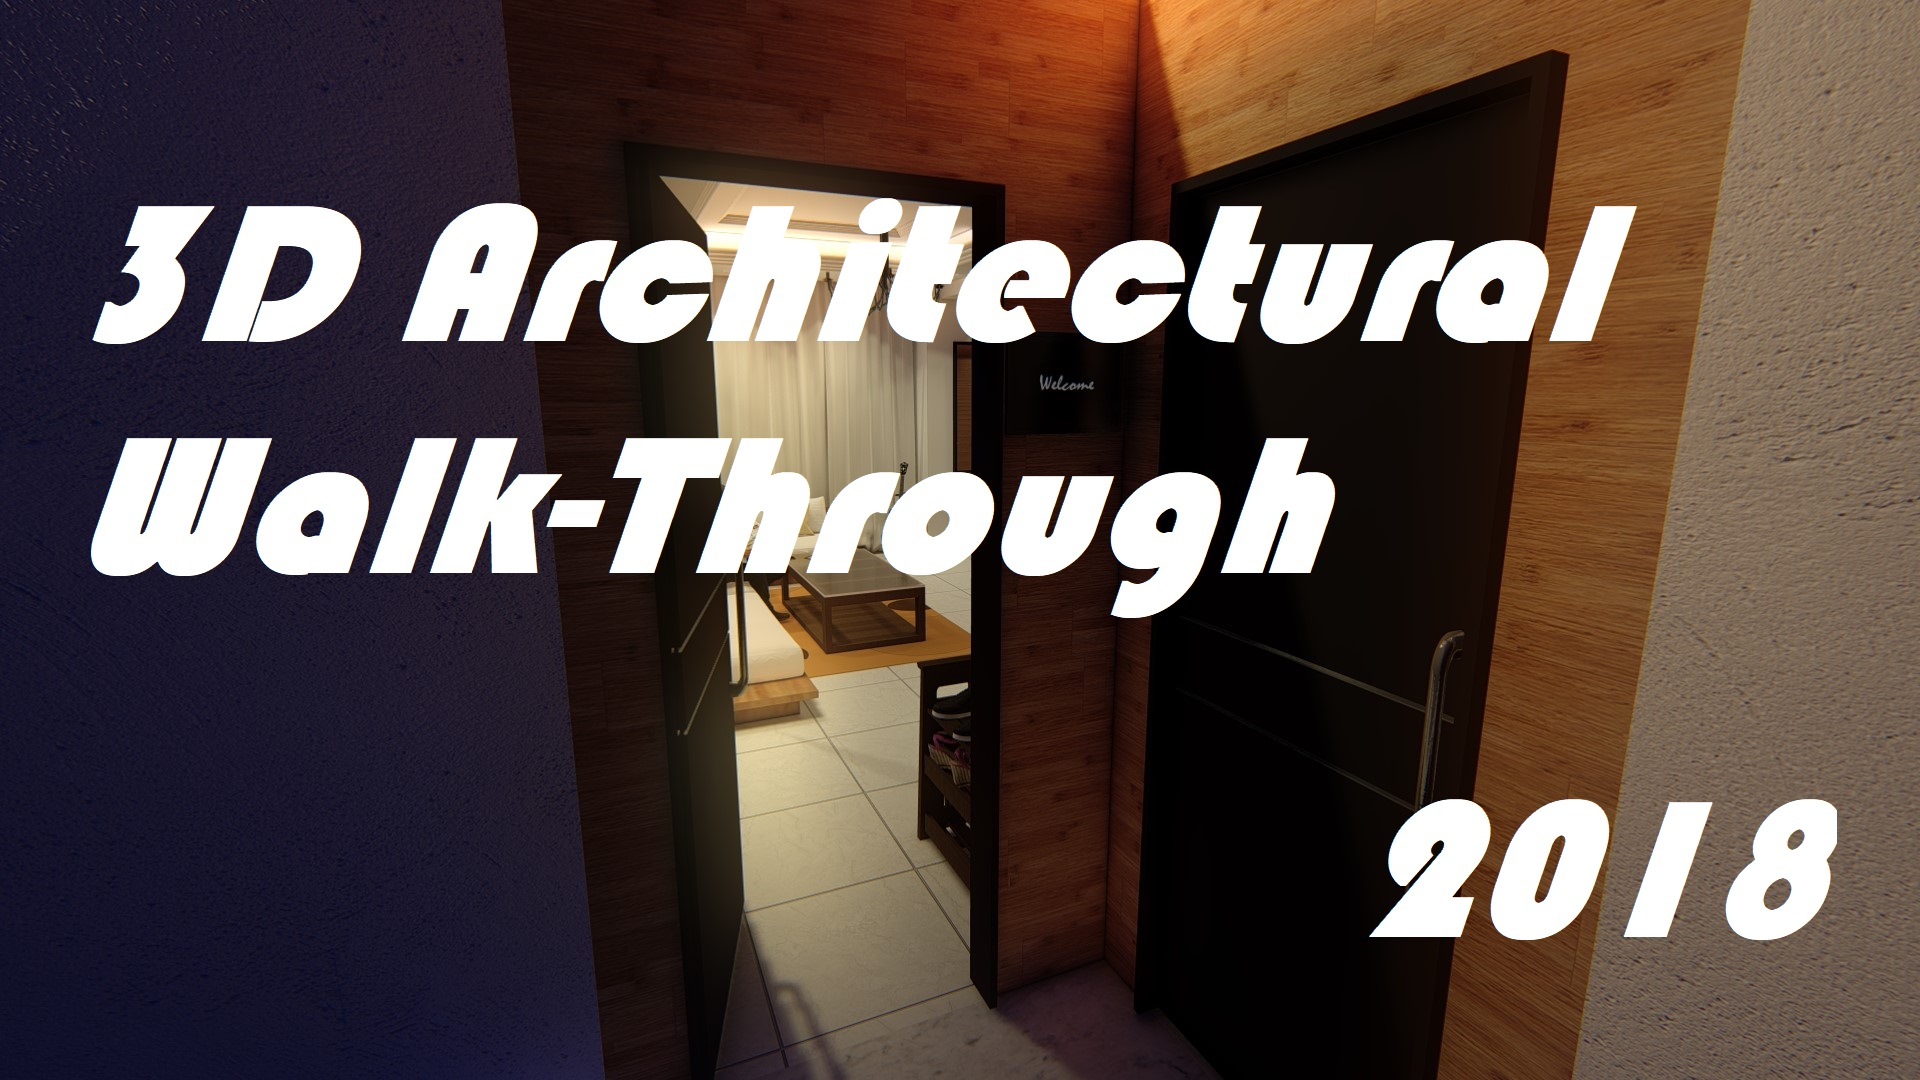 3D Architectural Walk-Through | Showcase 2